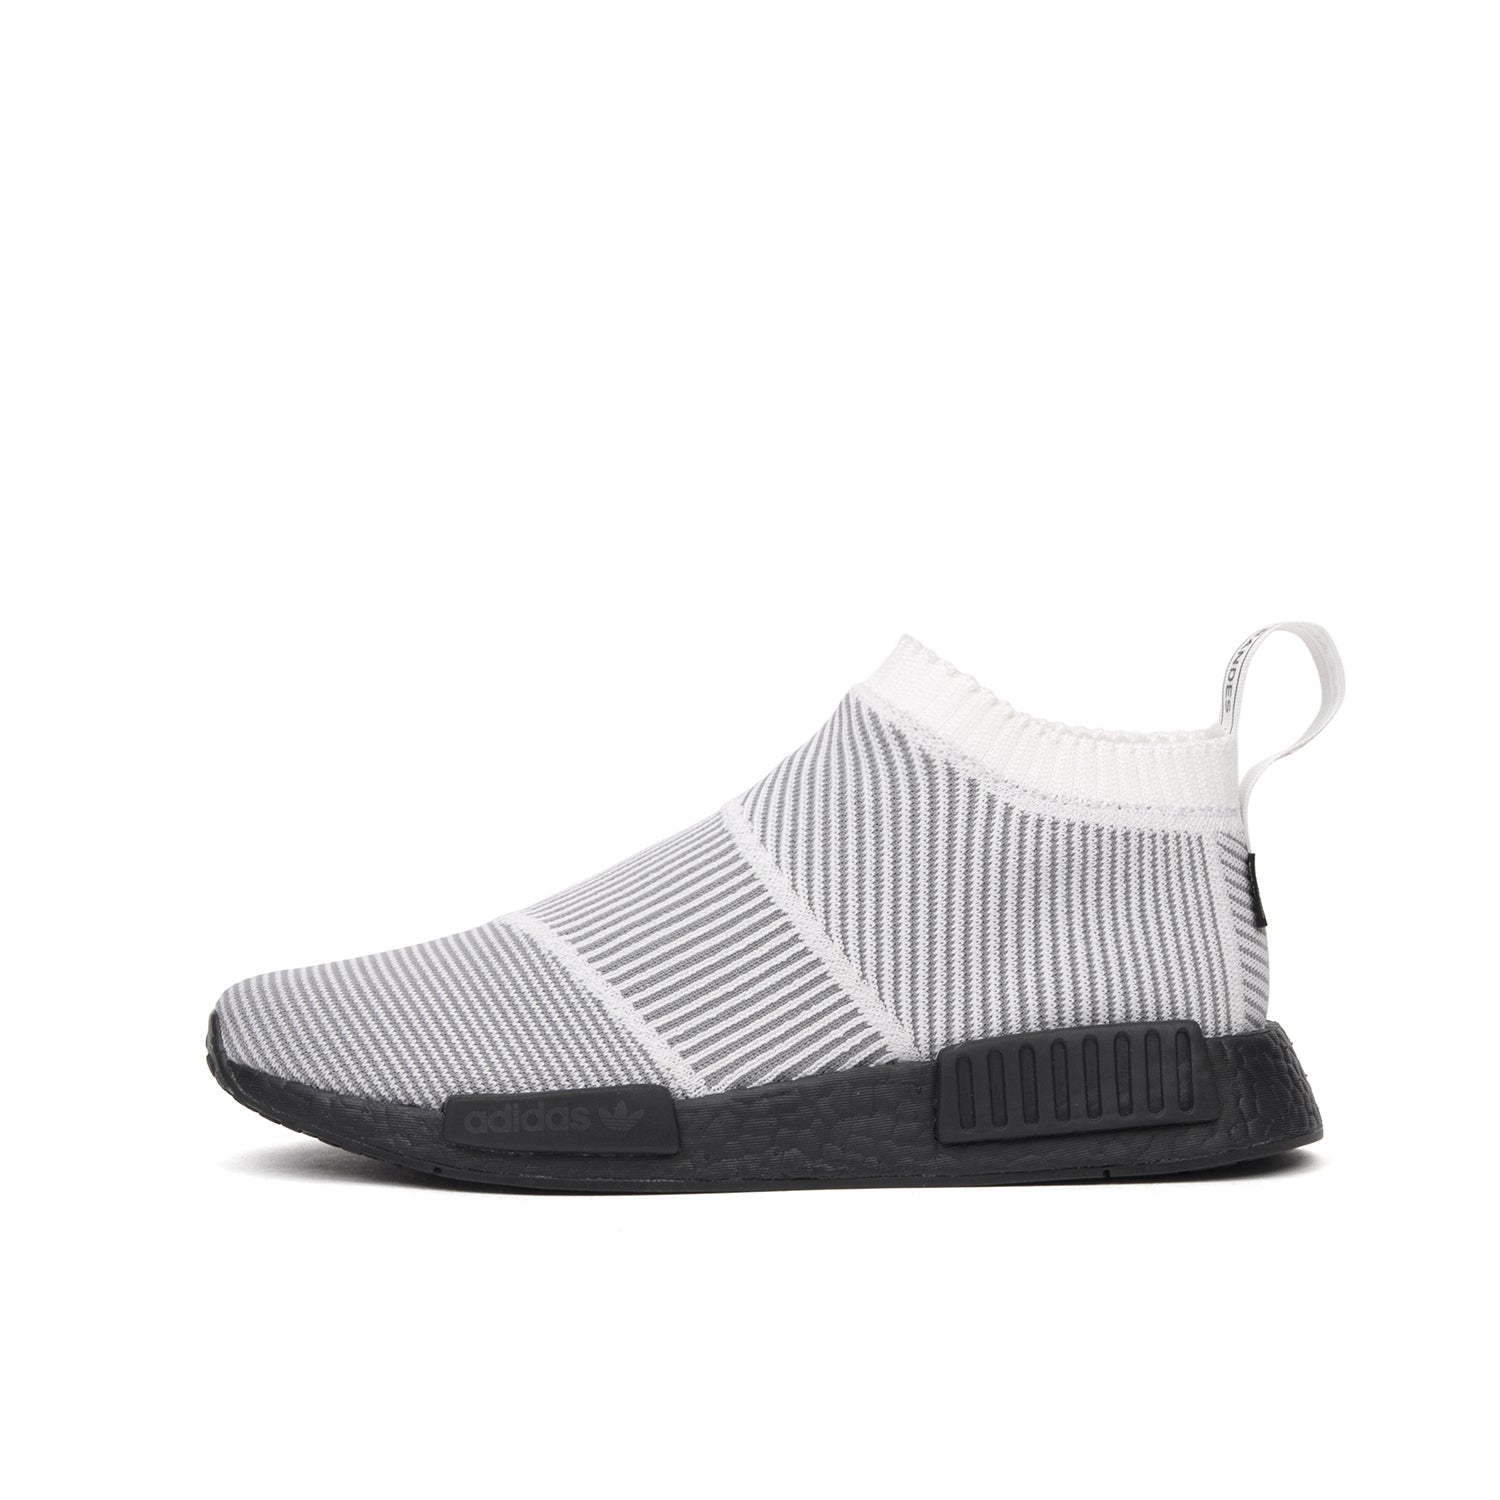 adidas Originals NMD_CS1 'Gore-Tex' PK White